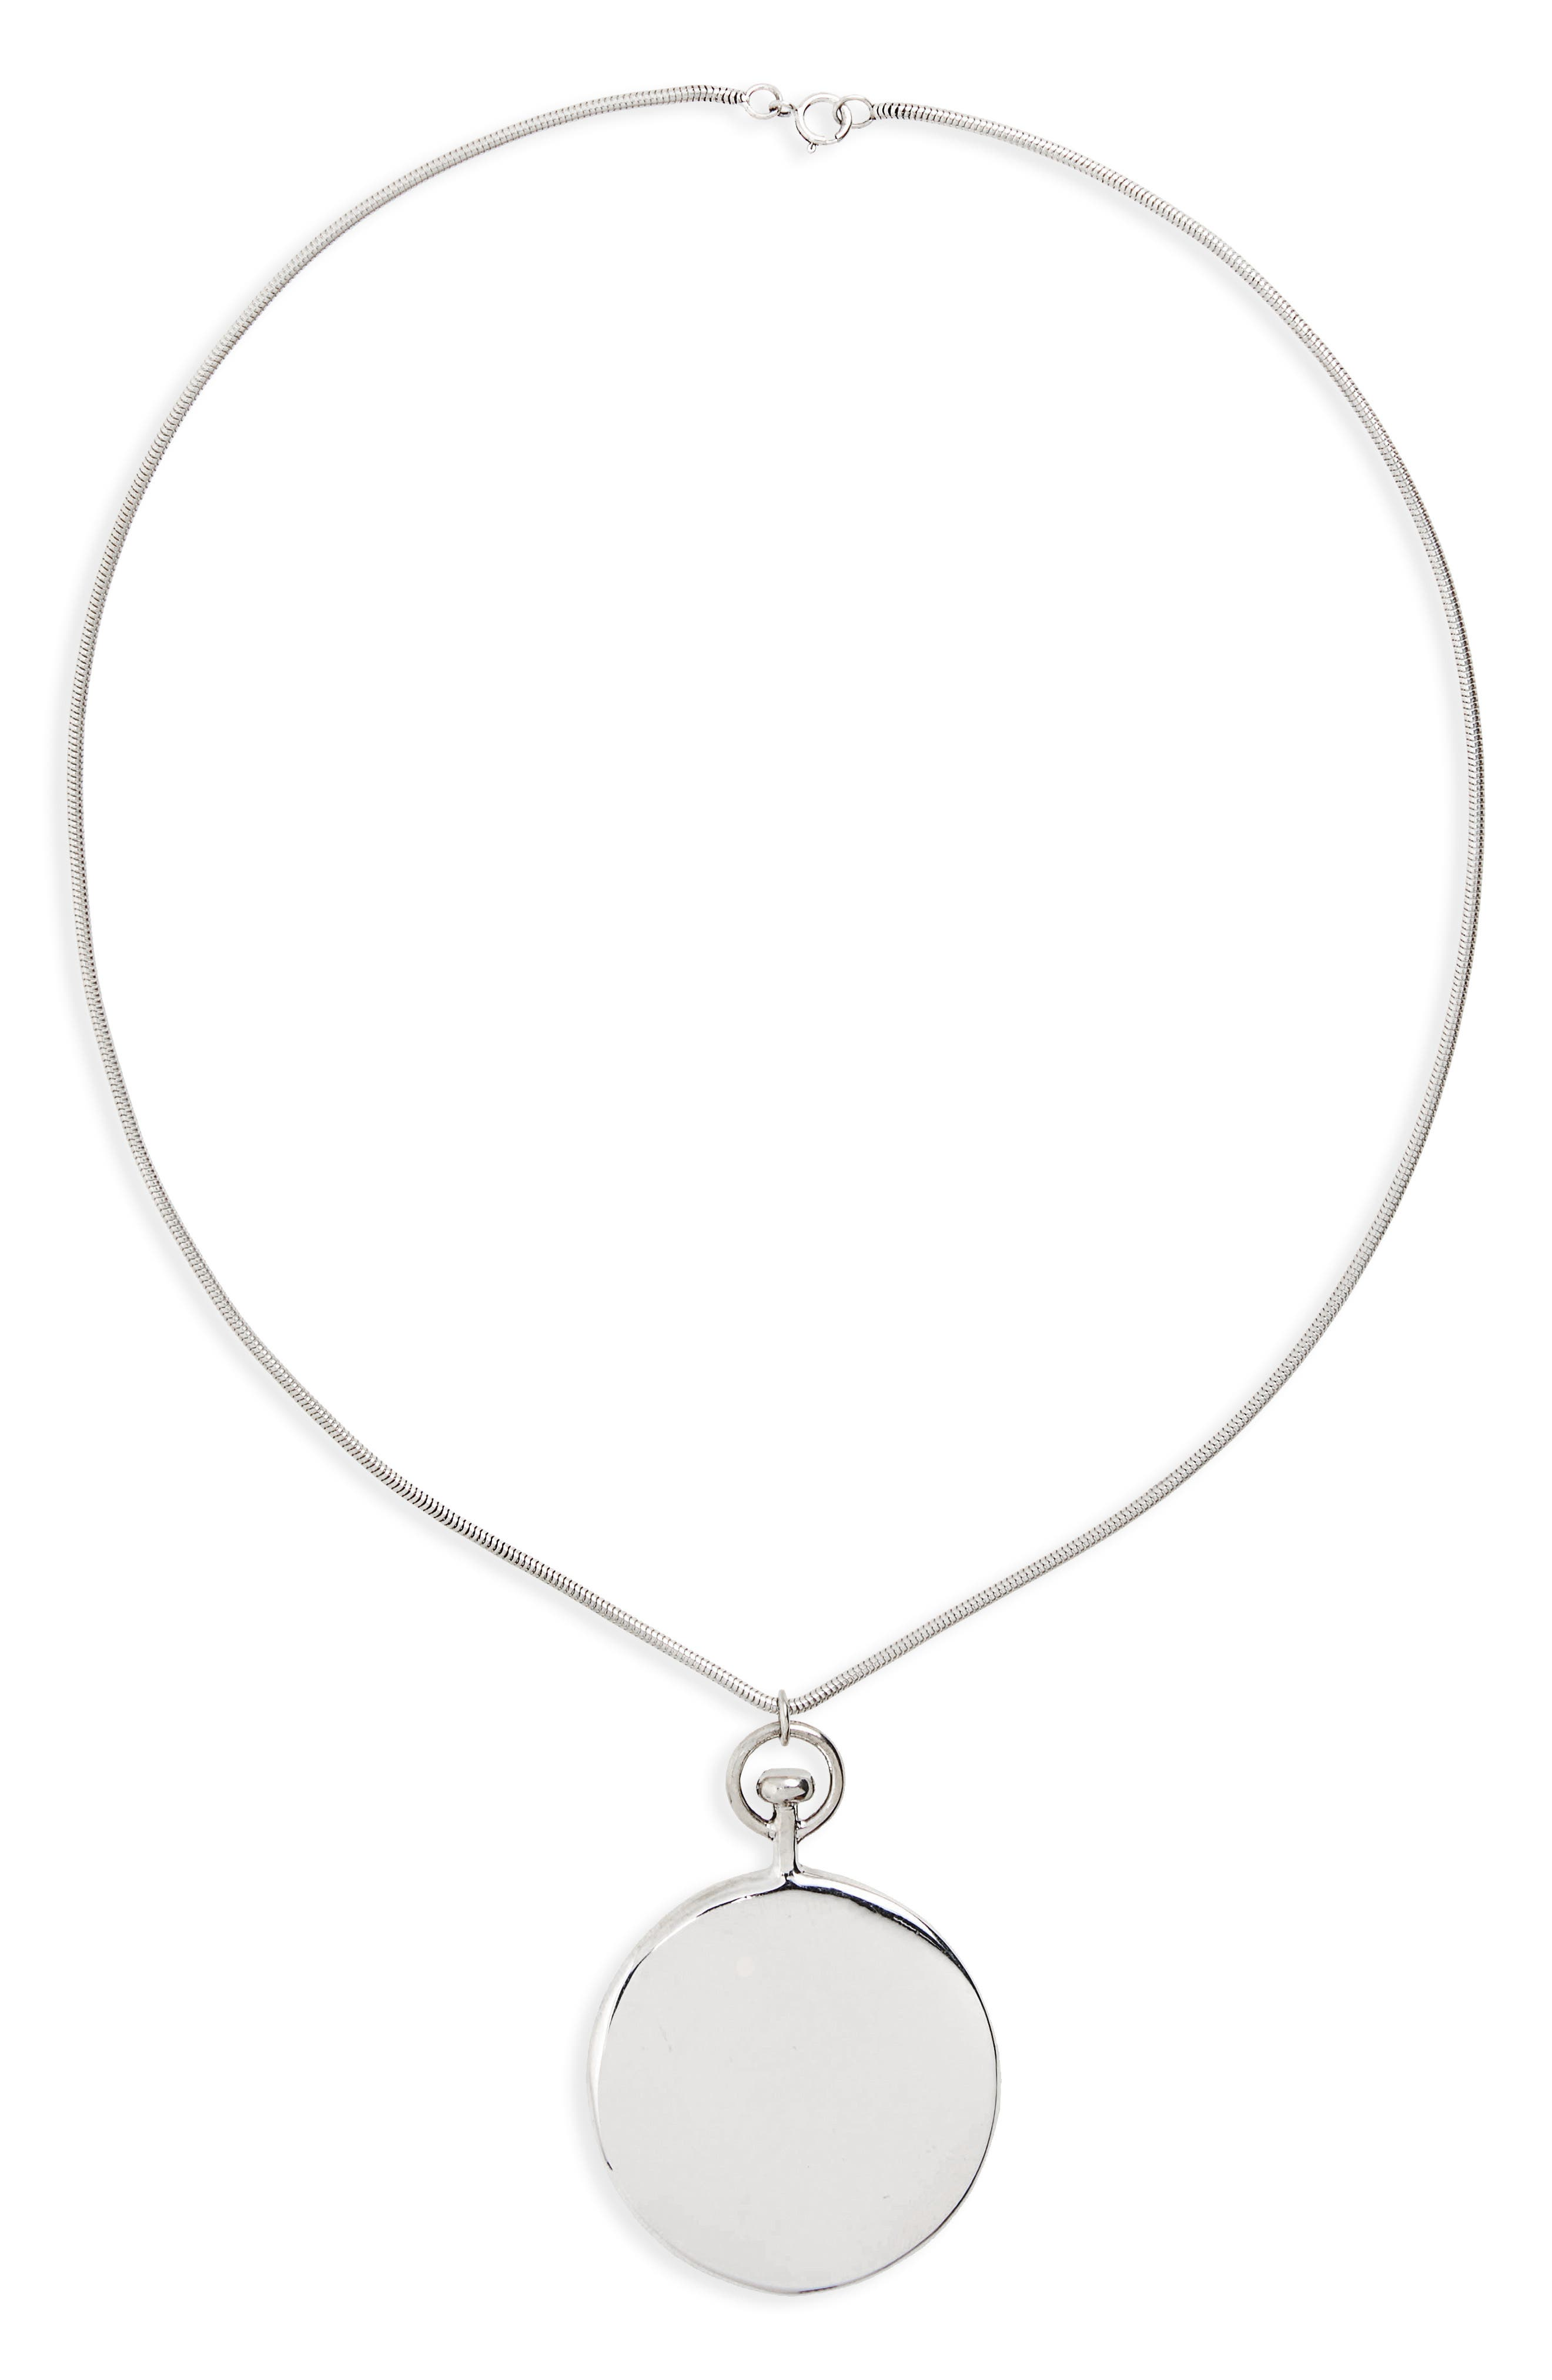 Main Image - Sophie Buhai Short Large Circle Pendant Necklace